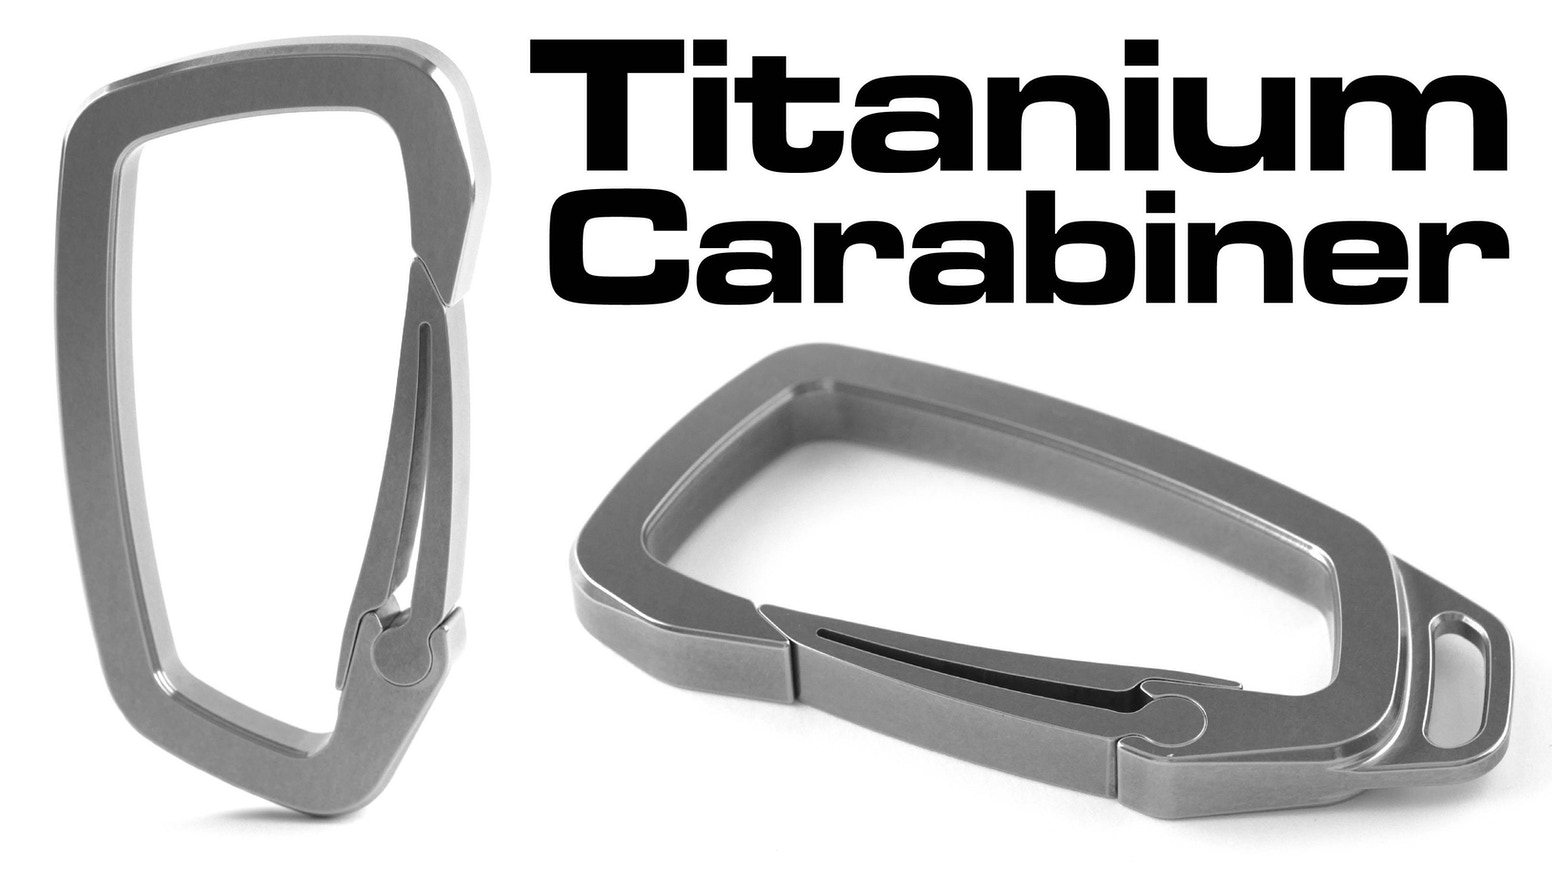 the ultimate titanium carabiner for everyday carry edc use by